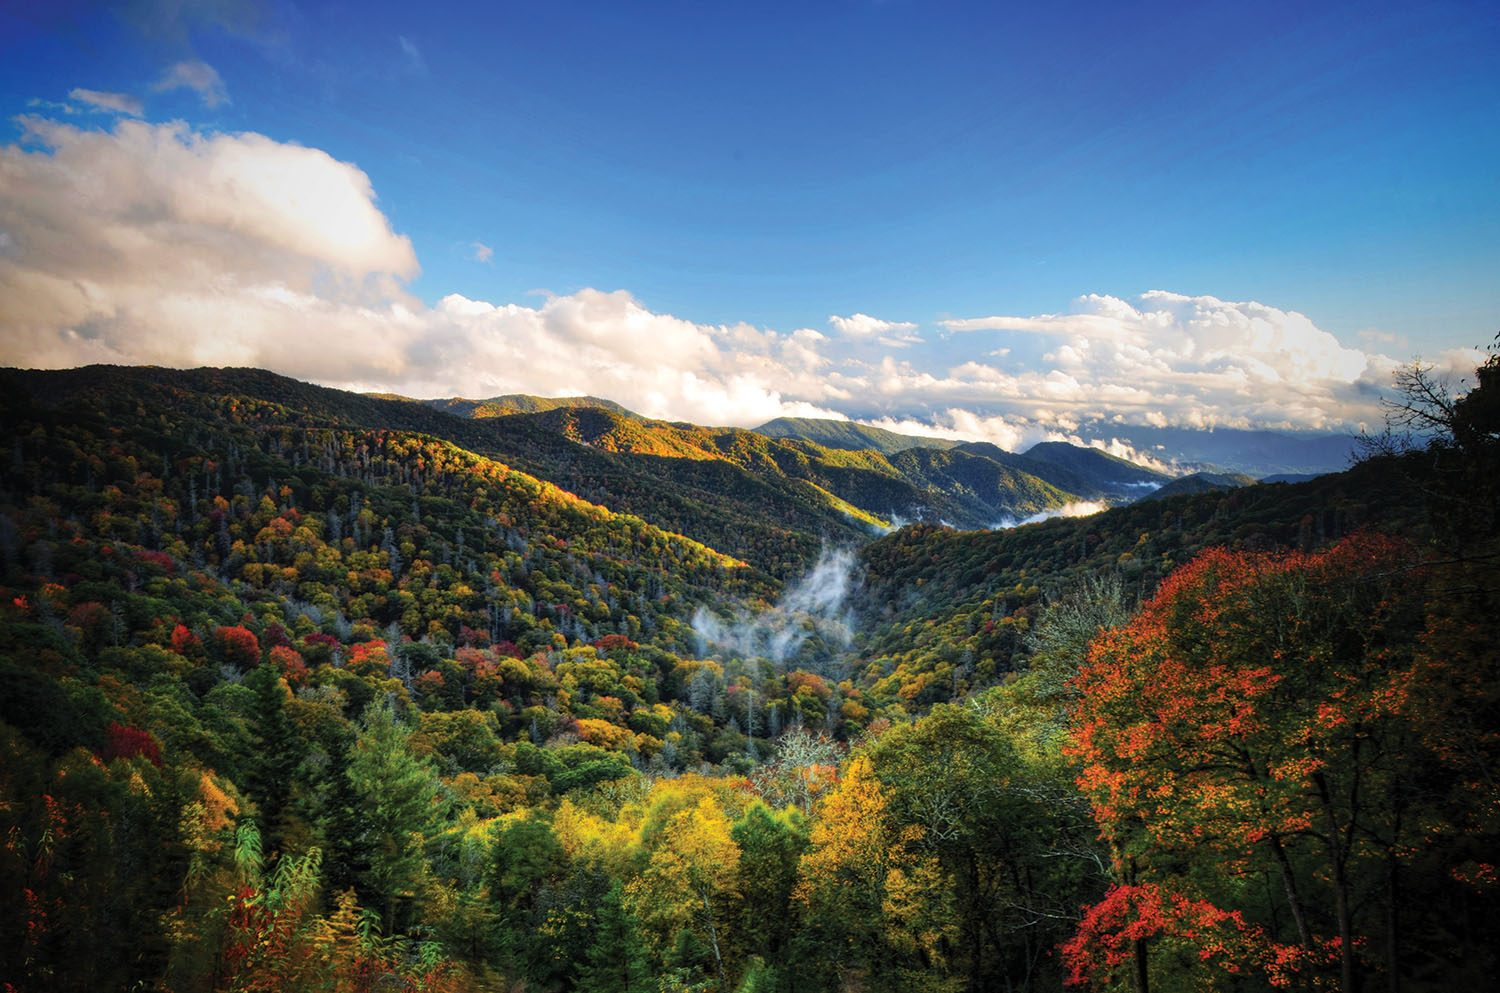 Scenic Drives Waterfalls Forest Heritage Whitewater & Smoky Mountains Of Nc